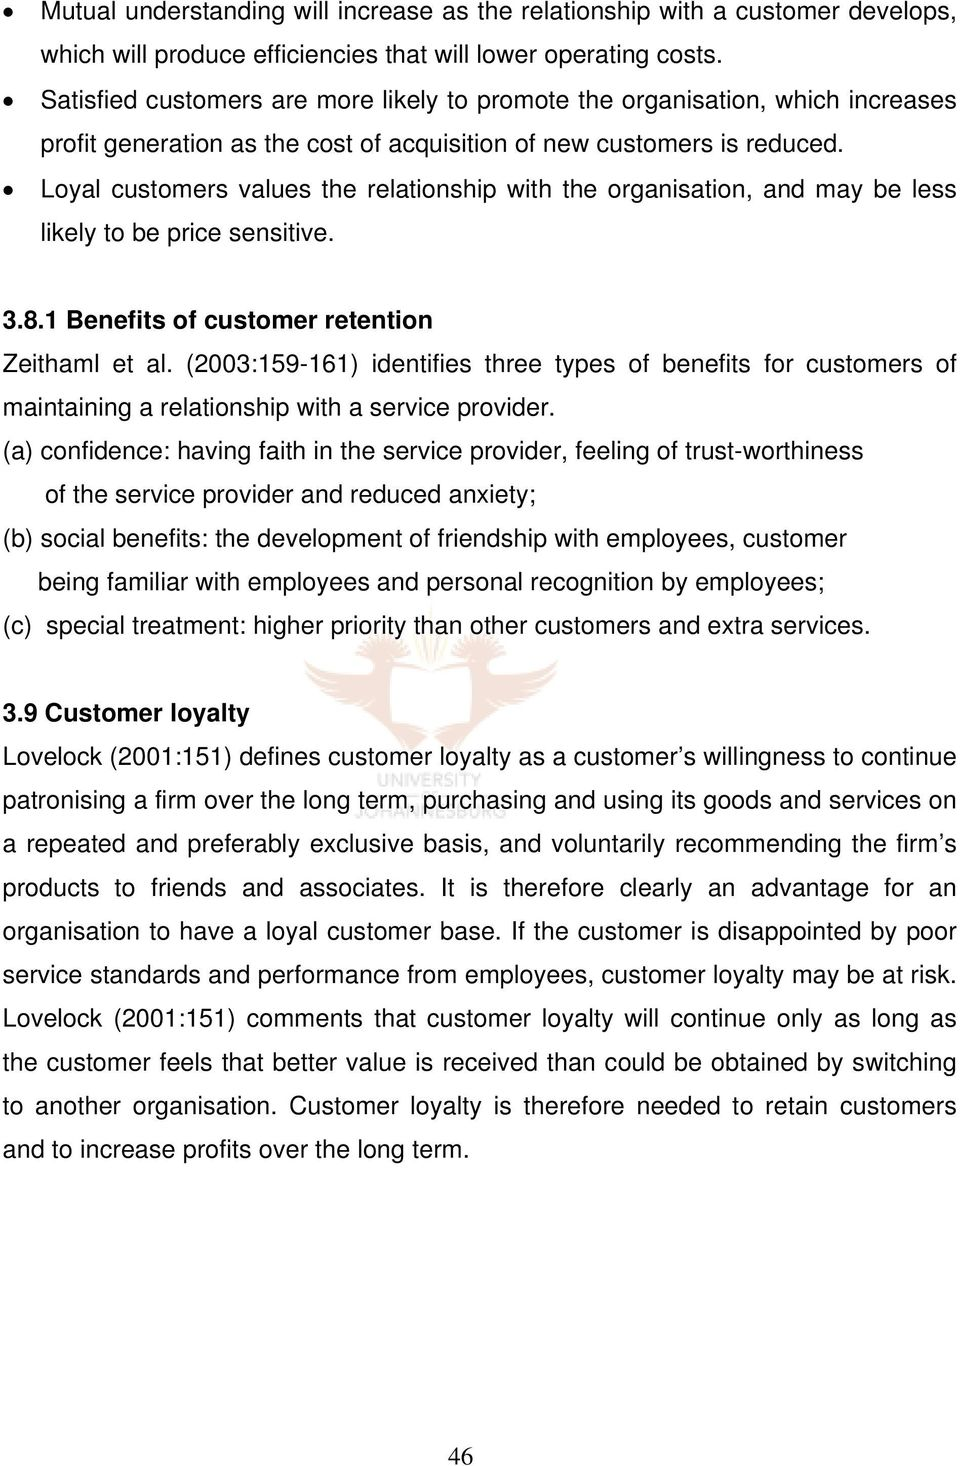 Loyal customers values the relationship with the organisation, and may be less likely to be price sensitive. 3.8.1 Benefits of customer retention Zeithaml et al.